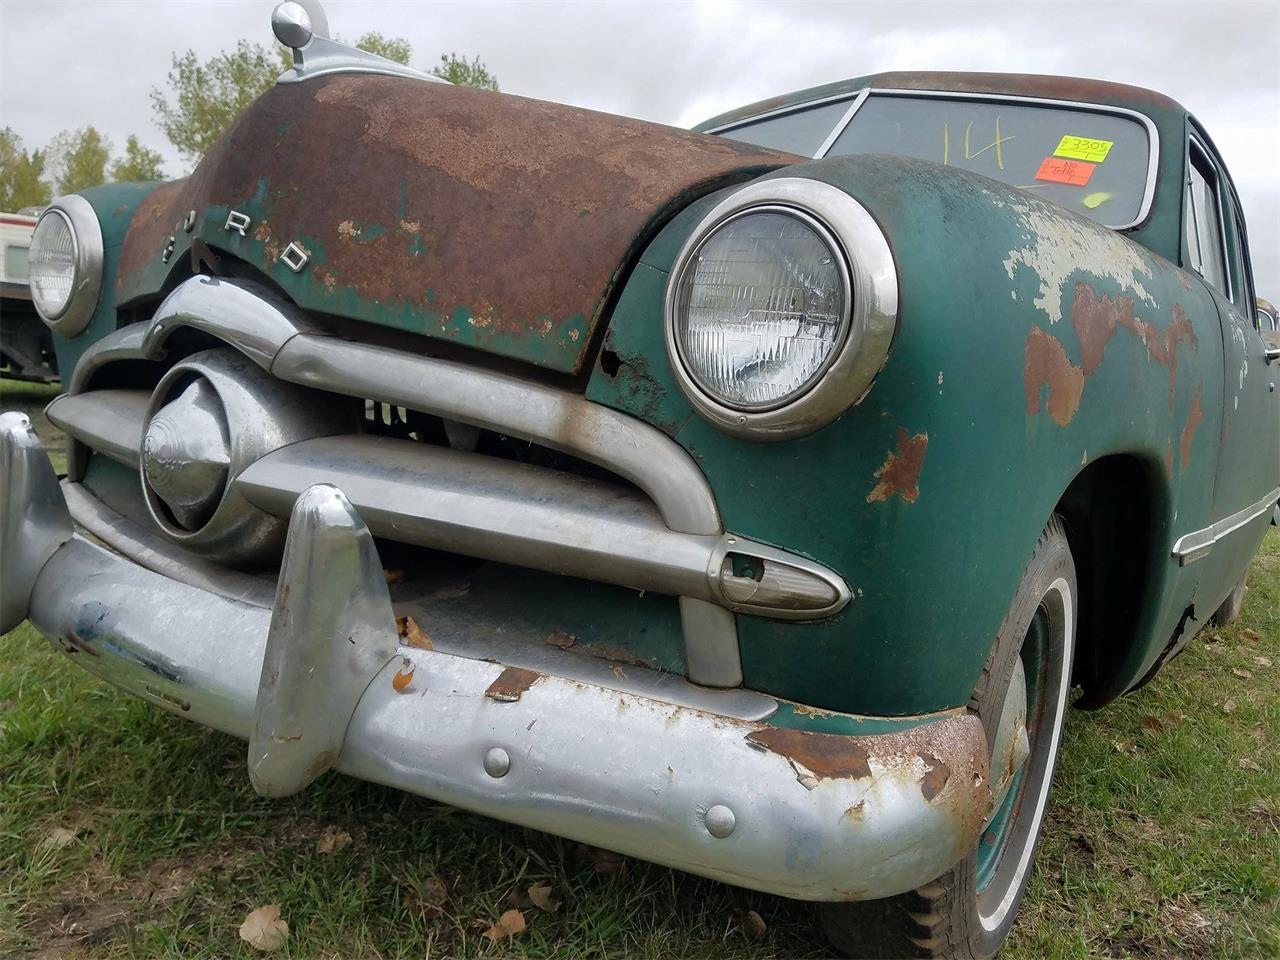 1949 Ford Sedan for sale in Thief River Falls, MN – photo 7